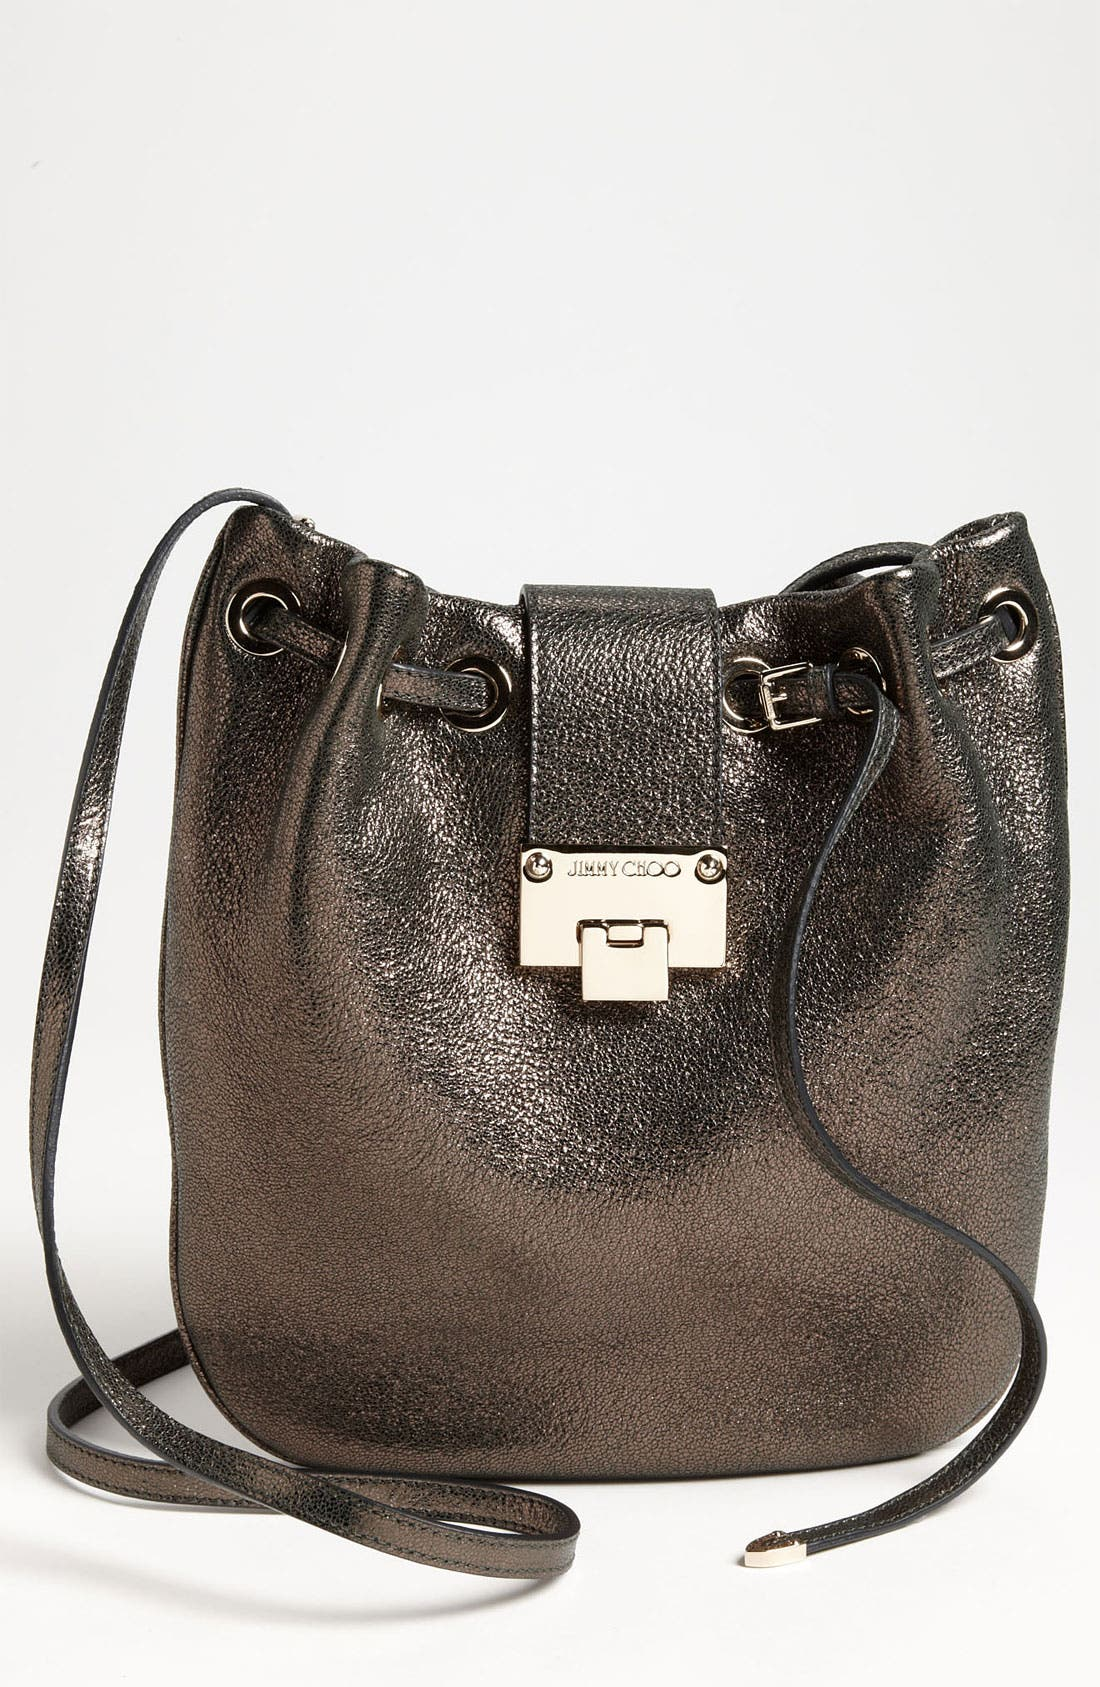 Alternate Image 1 Selected - Jimmy Choo 'Ryad' Glitter Leather Crossbody Bag